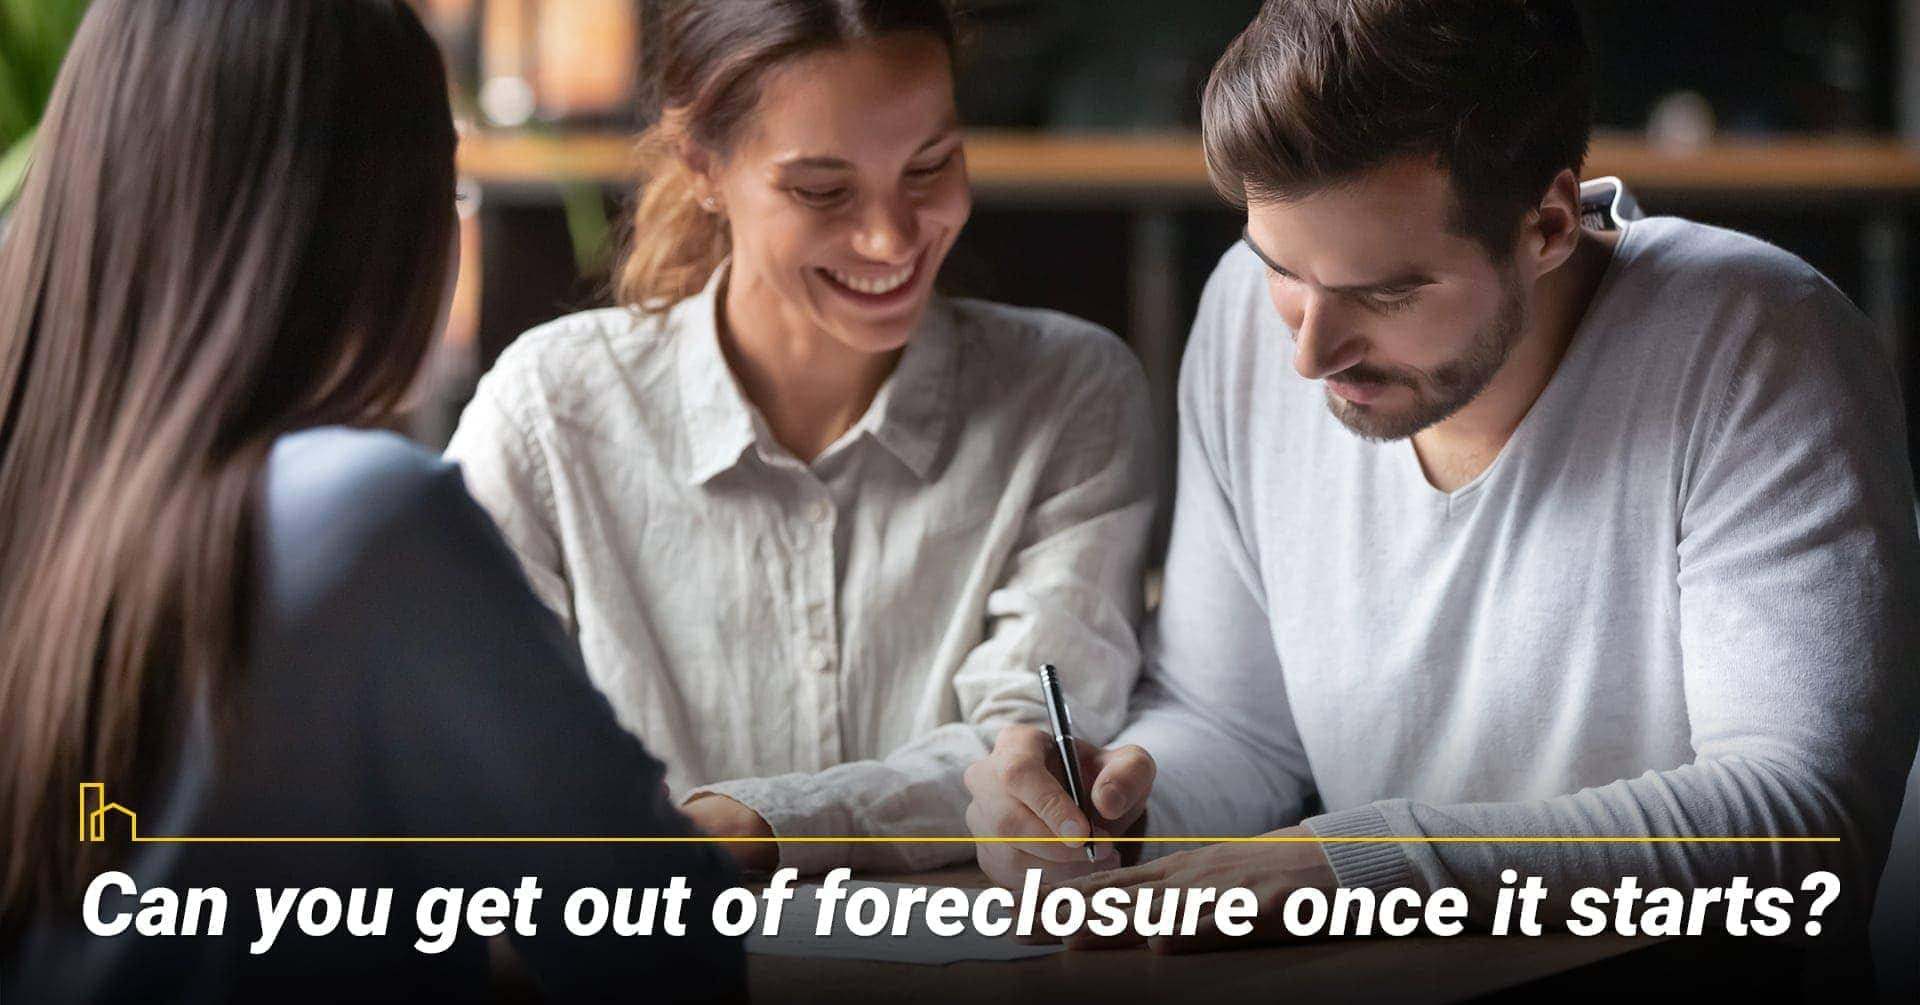 Can you get out of foreclosure once it starts? steps needed to take to stop the foreclosure process